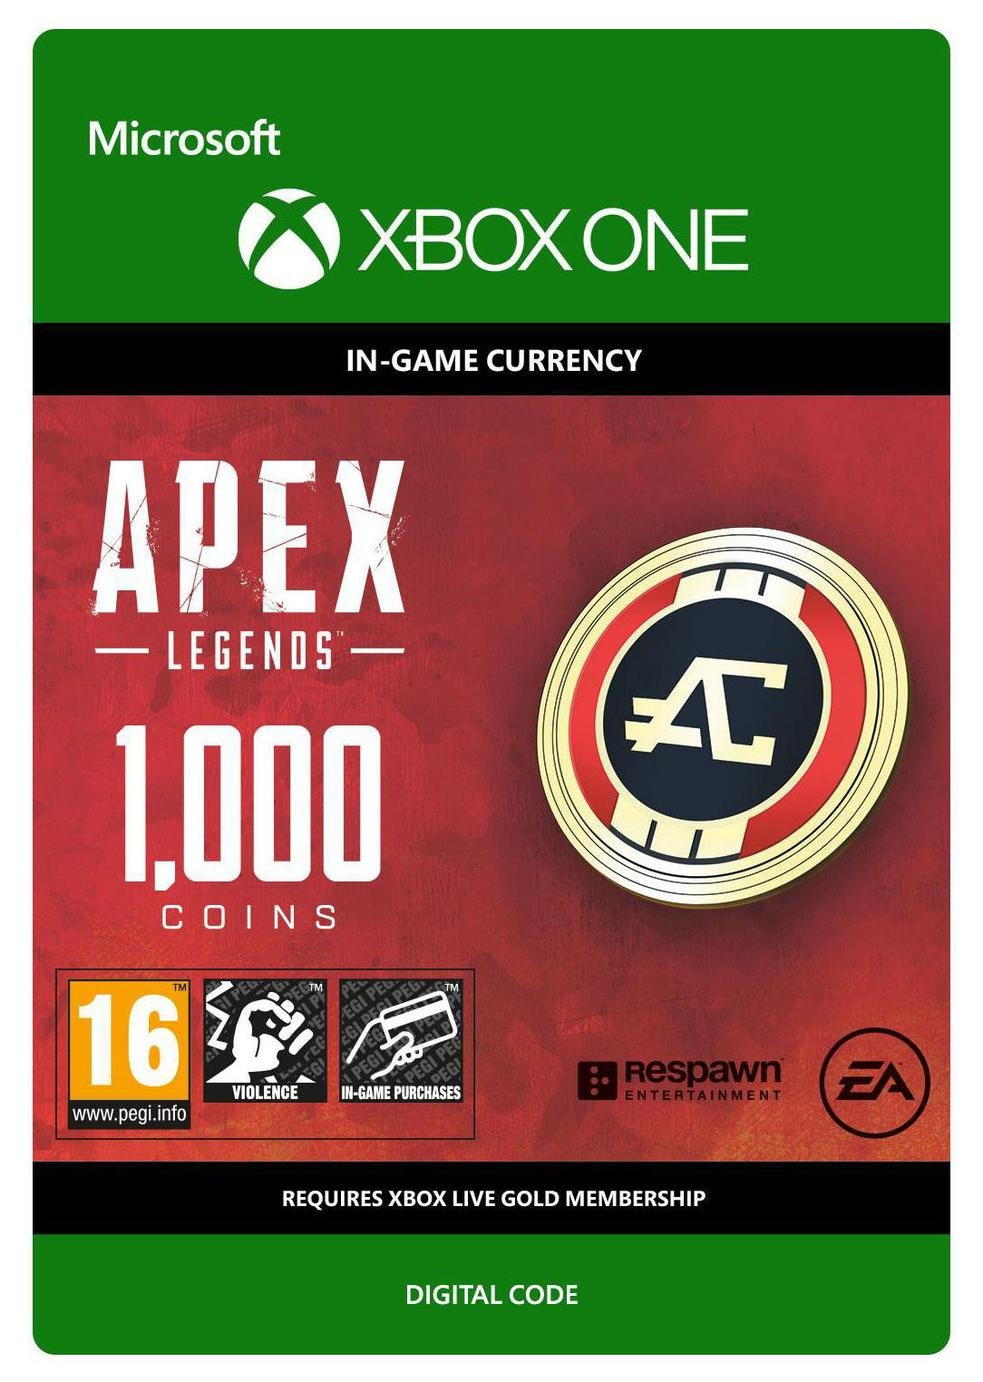 Apex Legends 1000 Coins Xbox One Receipt Code